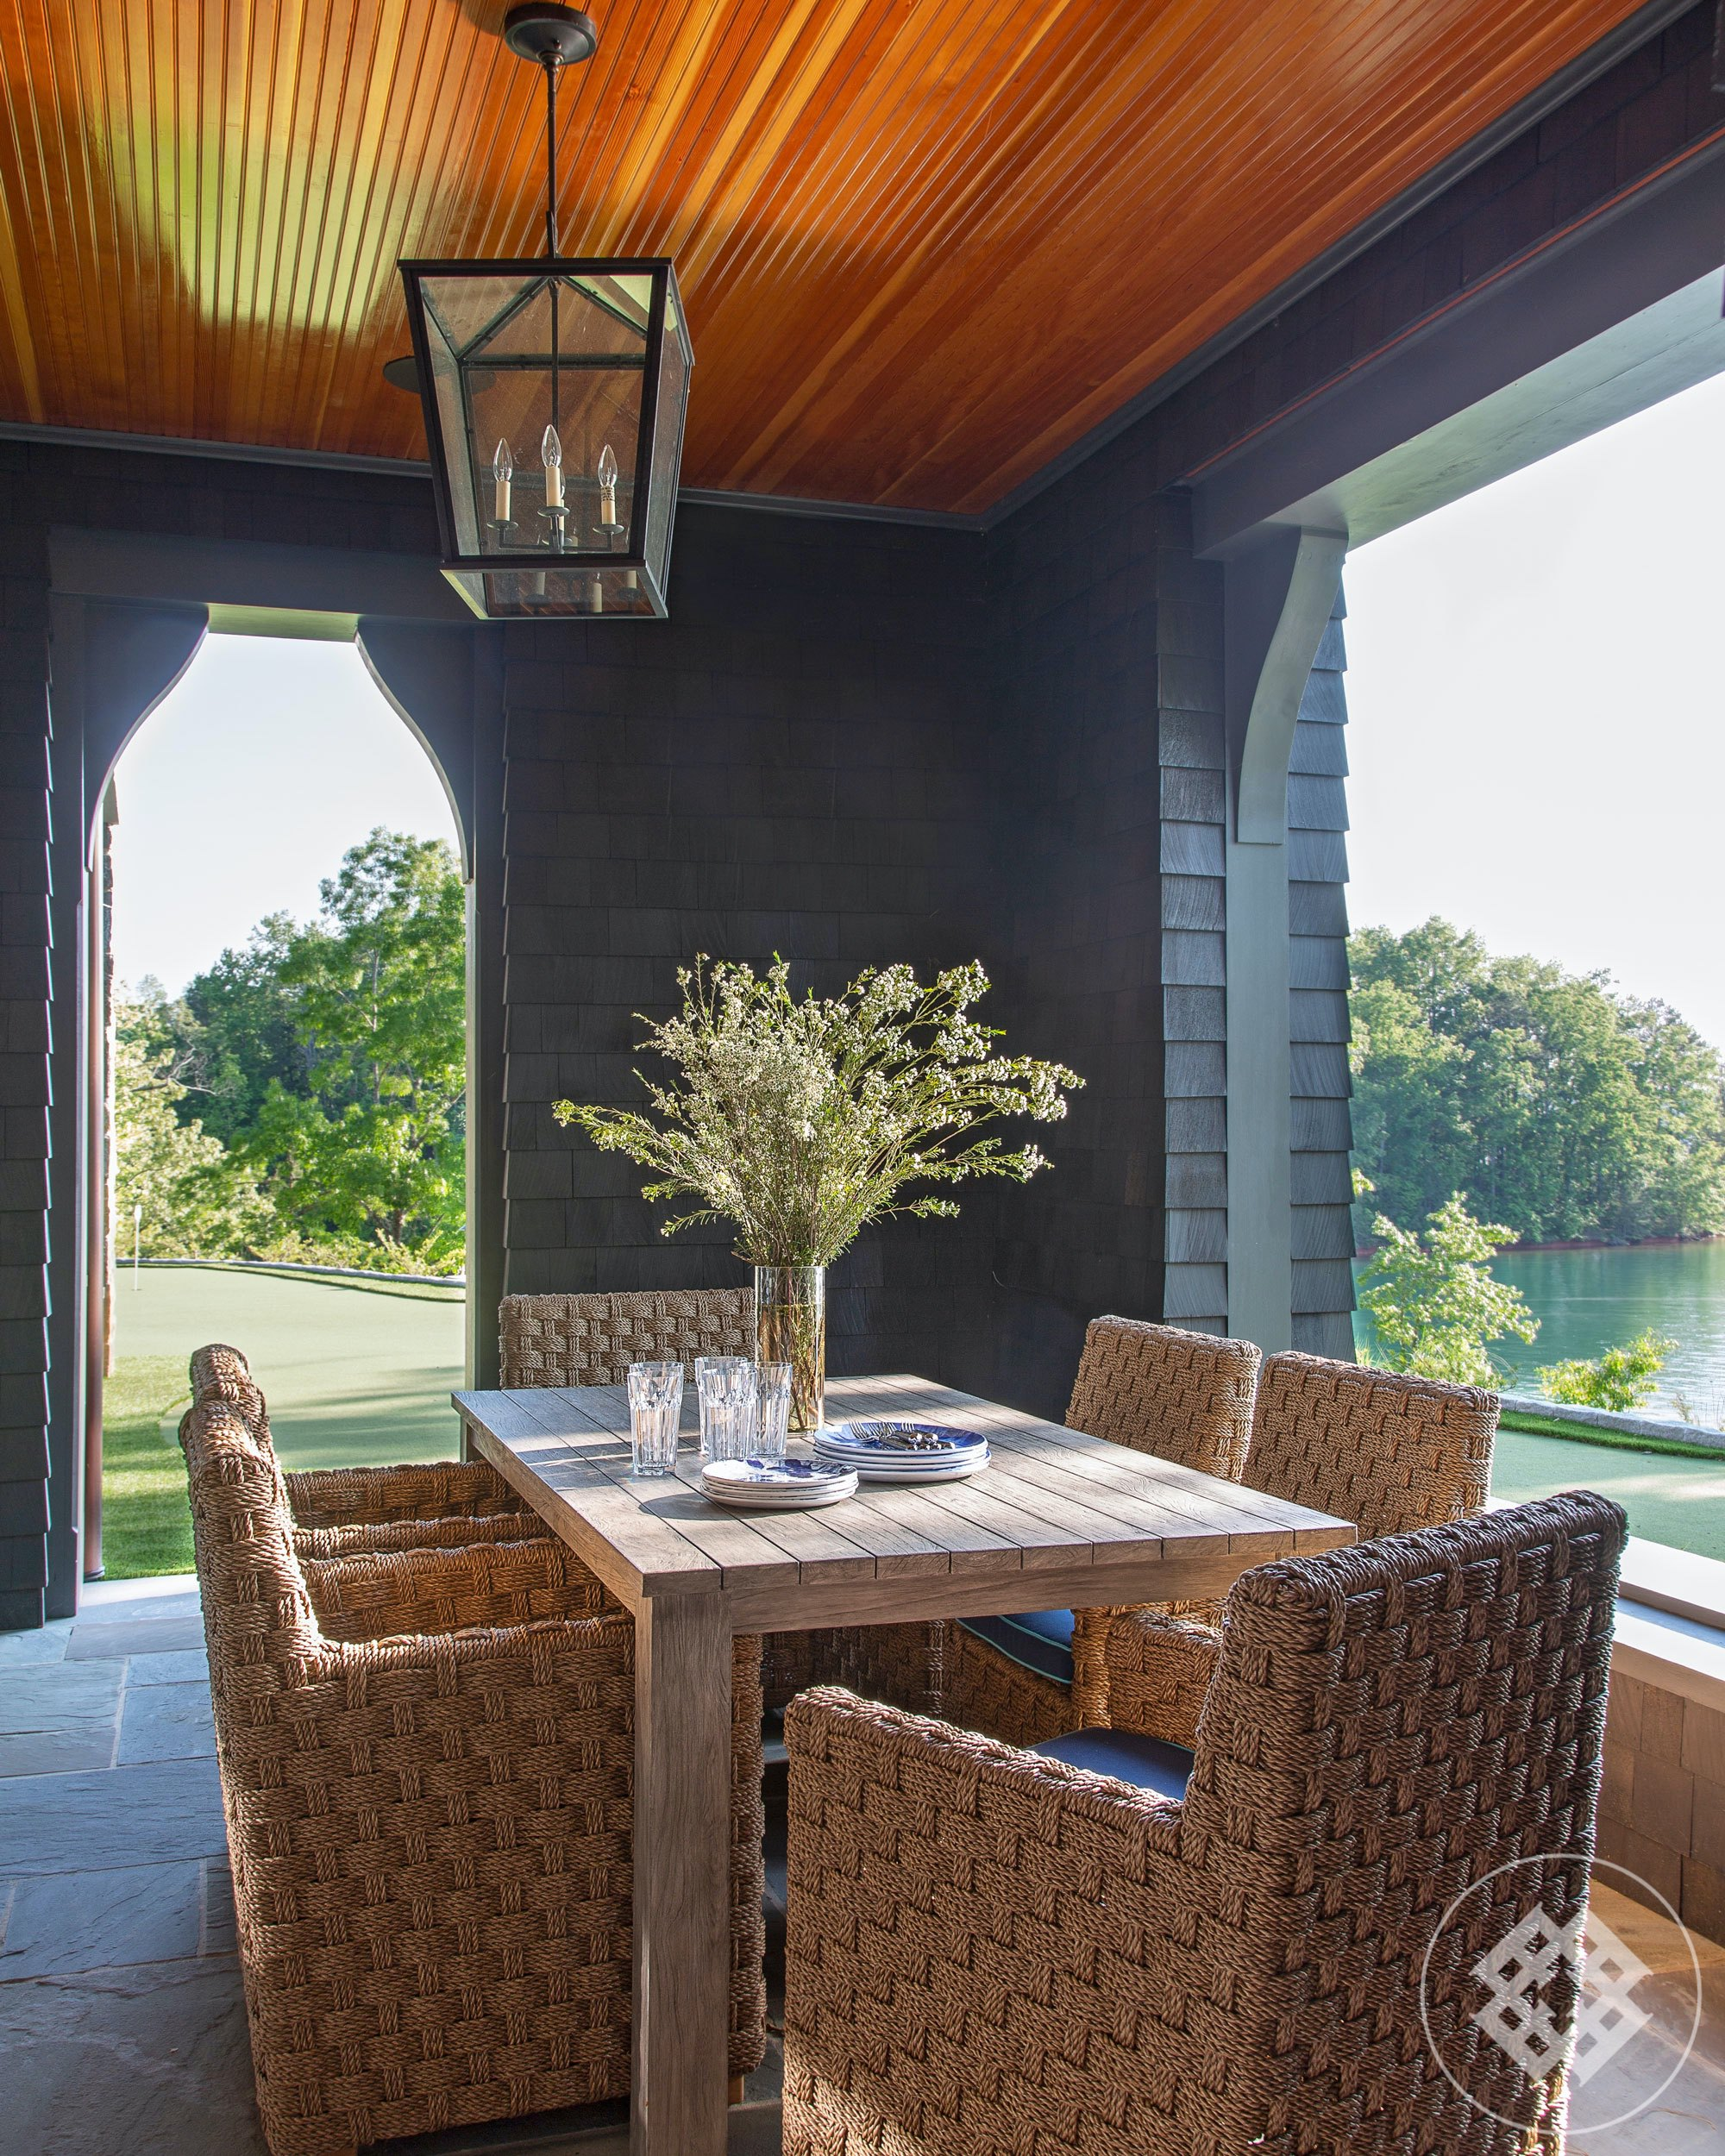 kkl-outdoor-dining-overlooking-lake-keowee-south-carolina.jpg